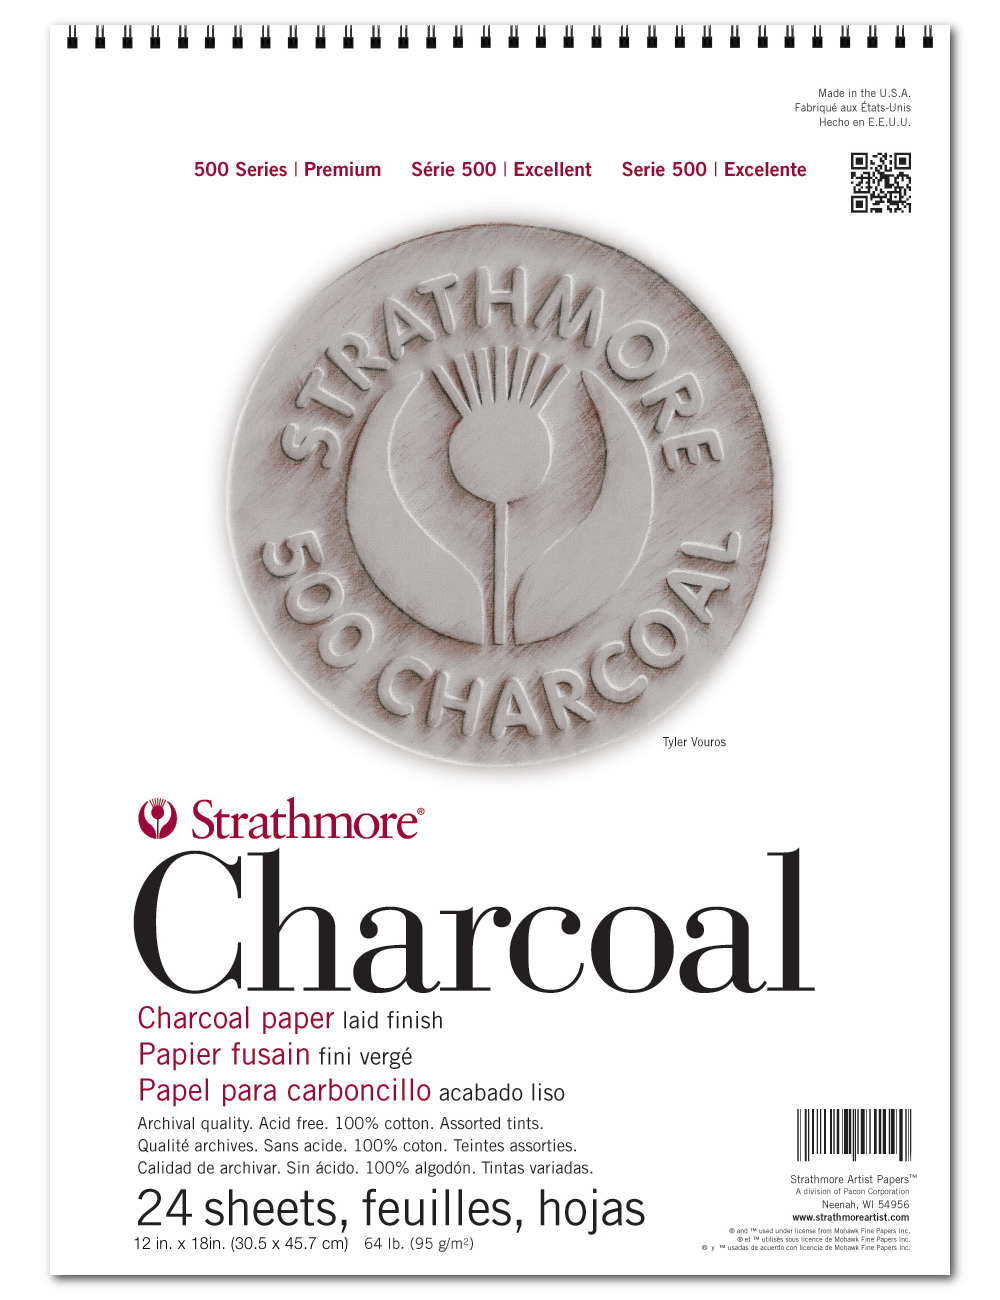 Strathmore 500 Charcoal Pad Assorted 12X18